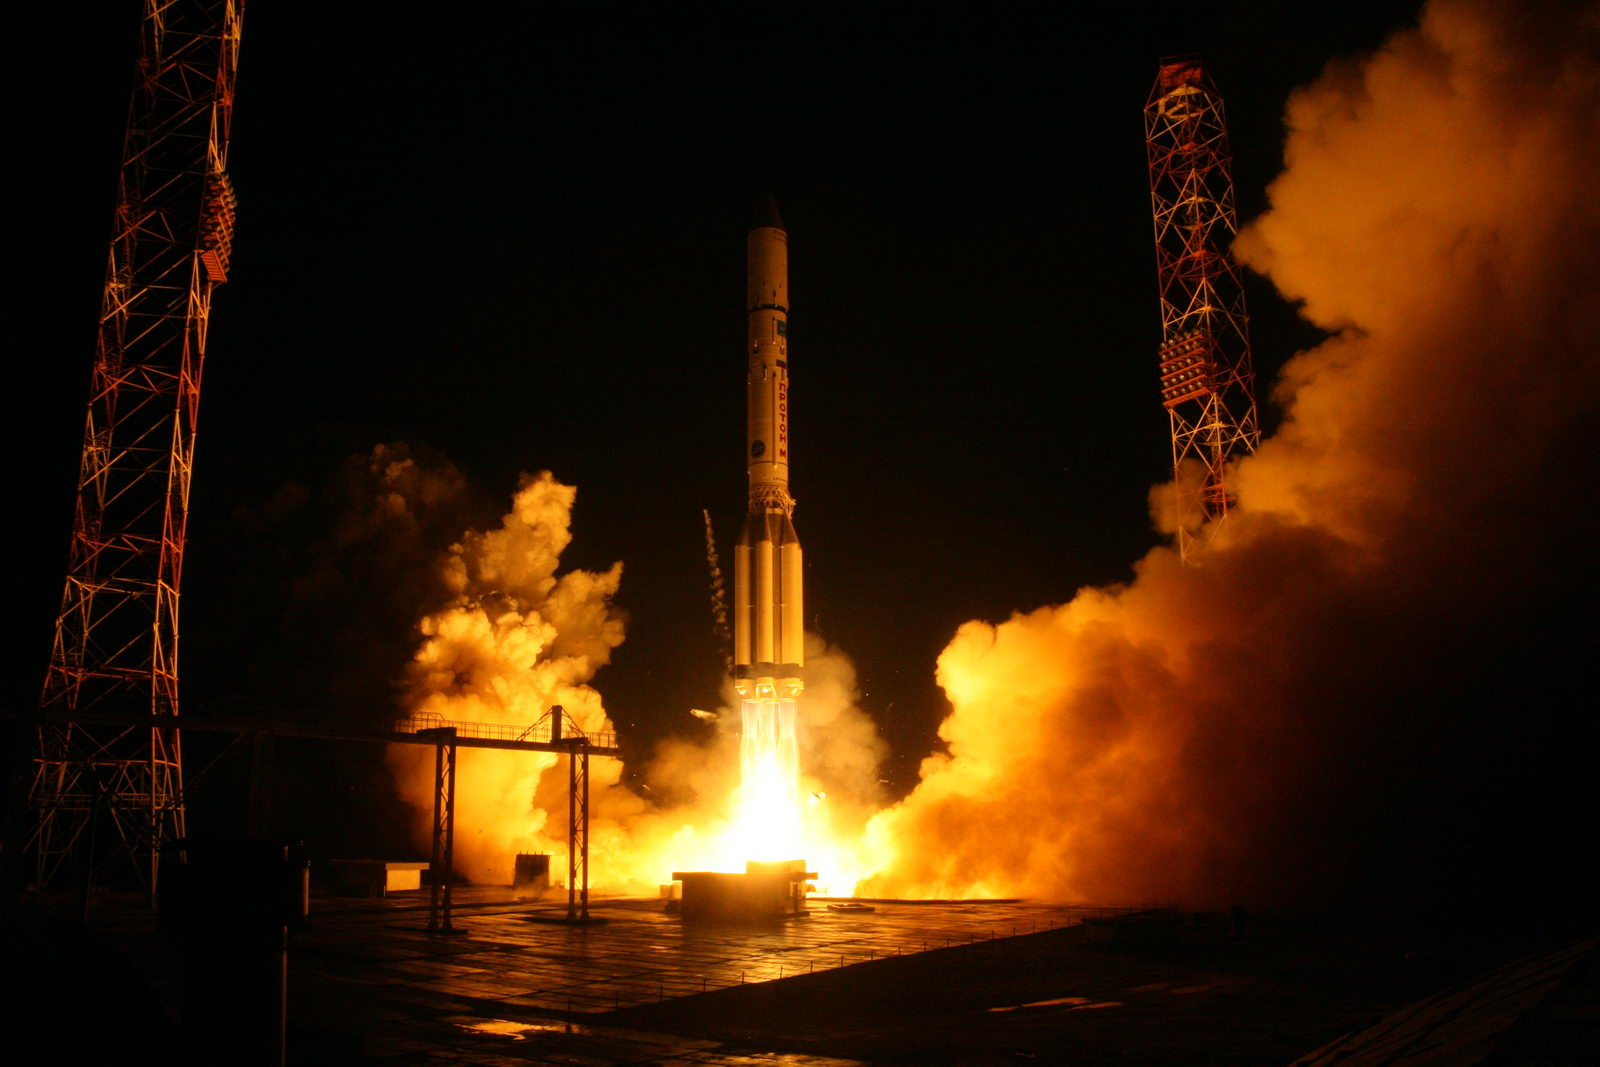 File photo of a Proton rocket launching from the Baikonur Cosmodrome on Dec. 24, 2015. Credit: Roscosmos